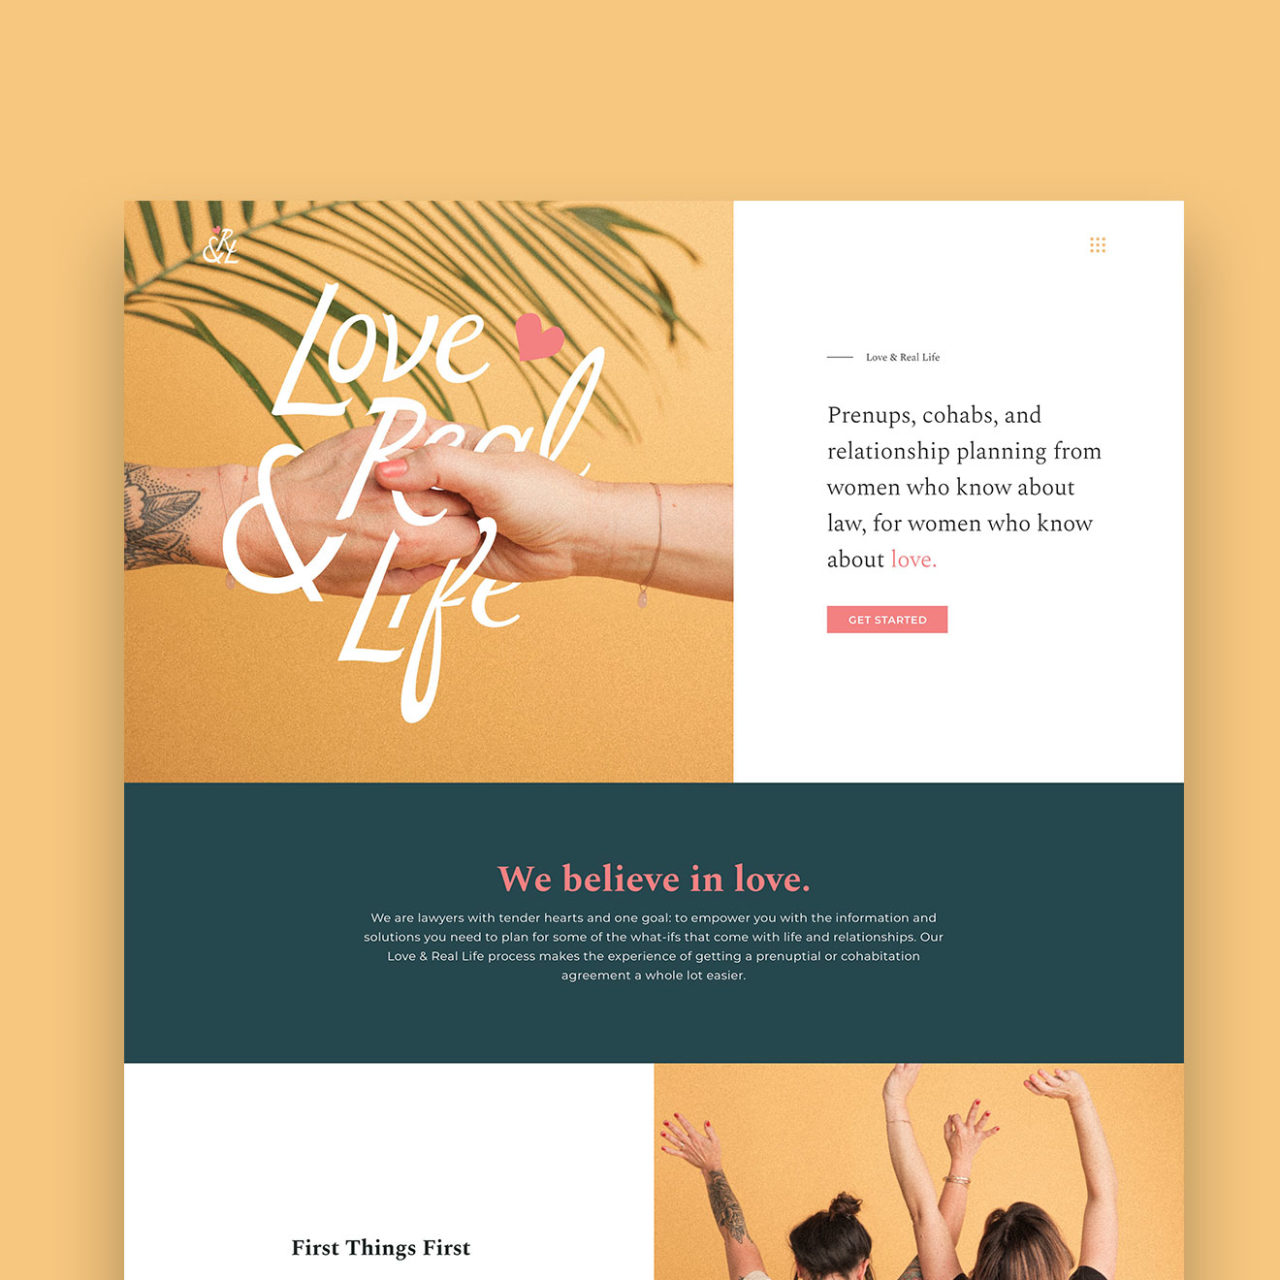 Love & Real Life Website